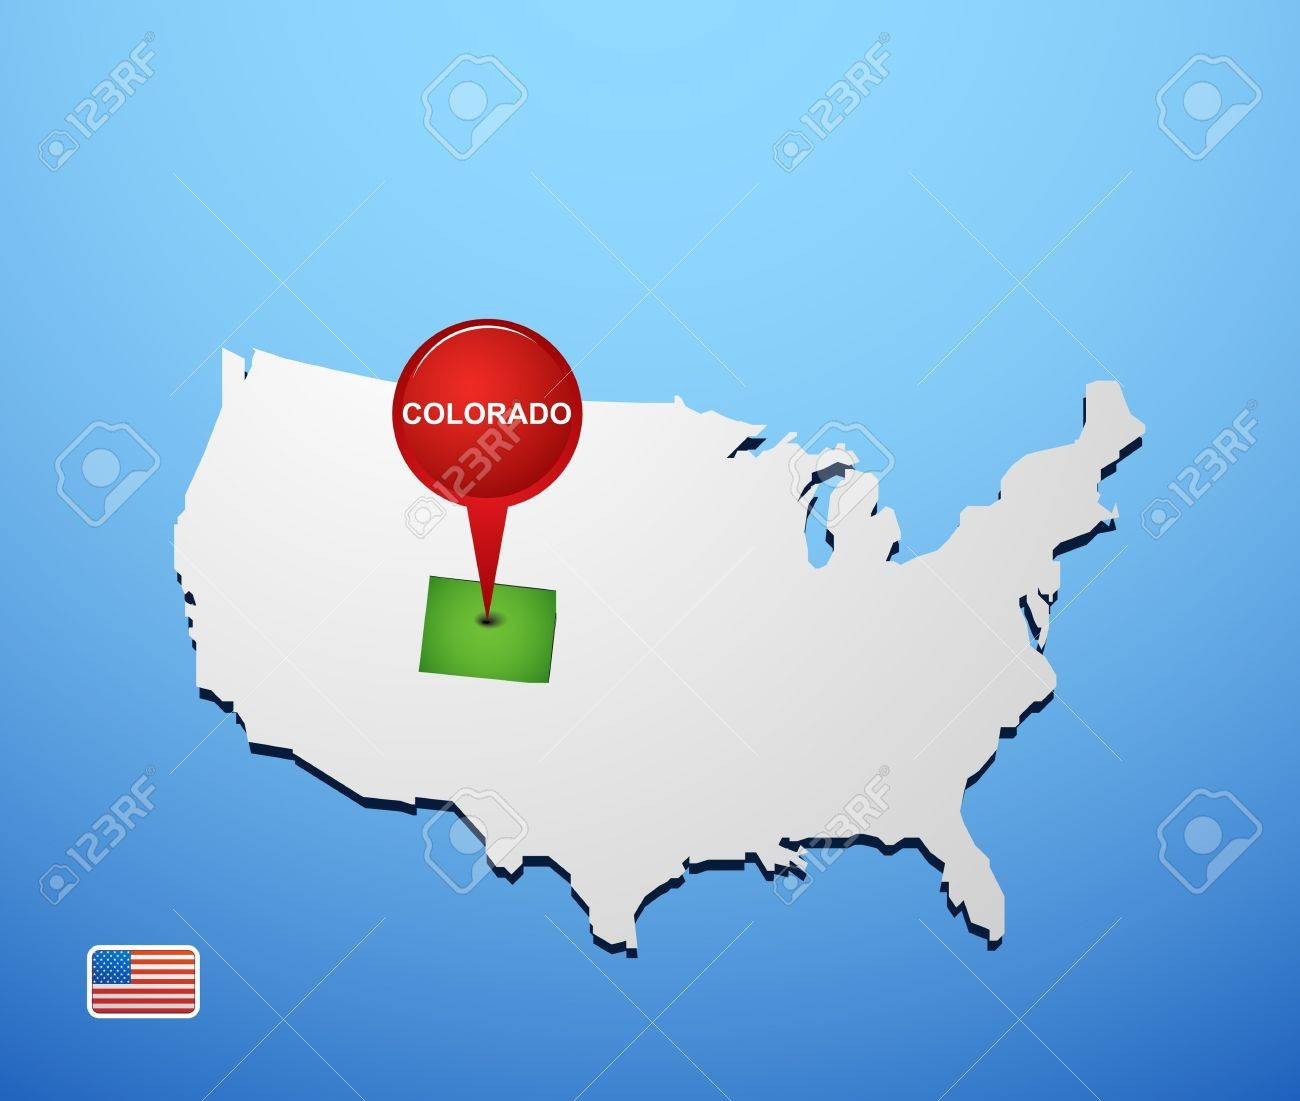 Colorado On USA Map Royalty Free Cliparts Vectors And Stock - Map of usa where is colorado